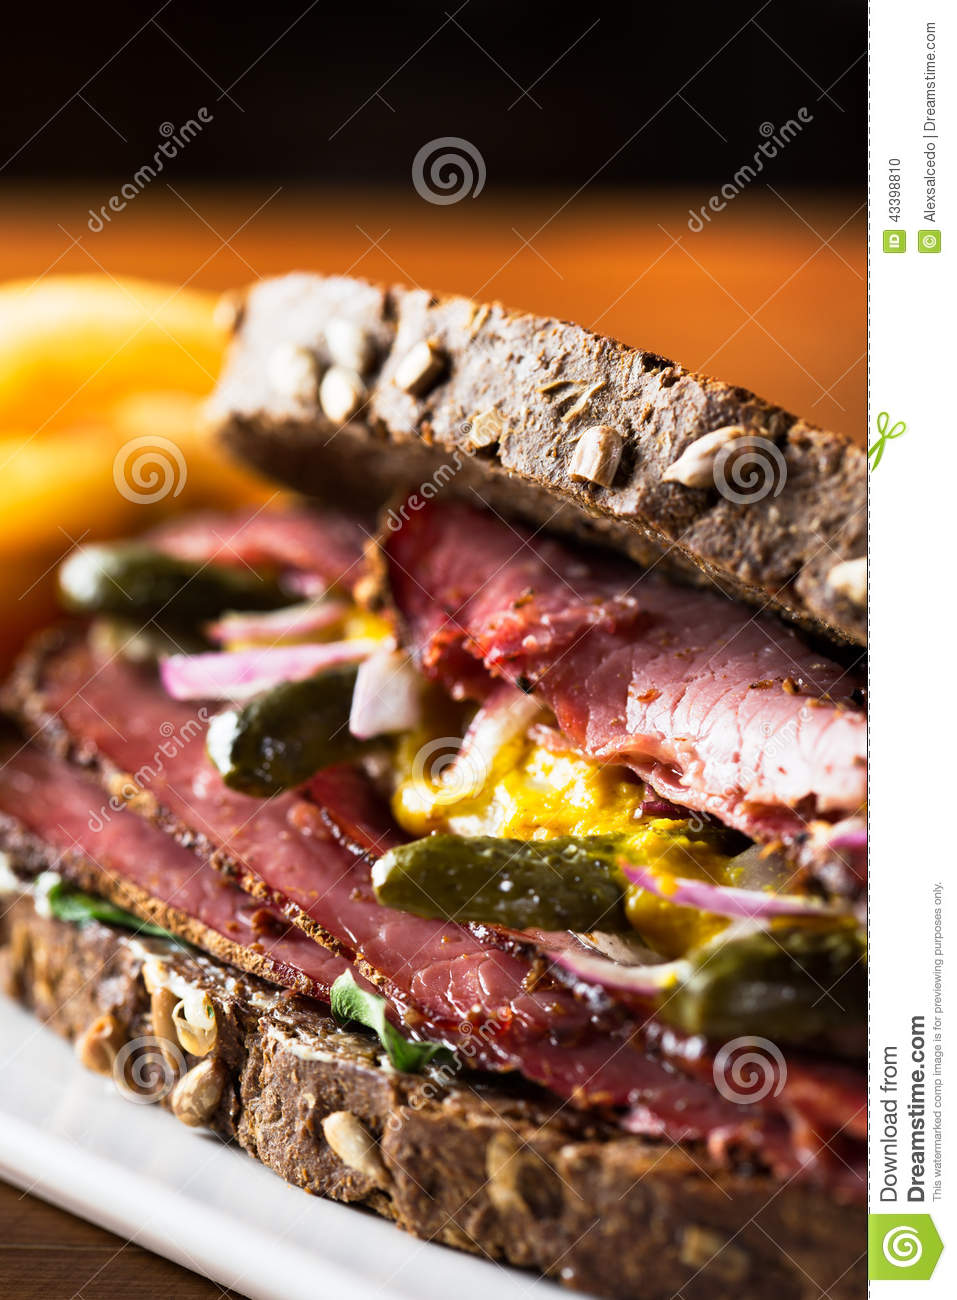 Food To Make With Corned Beef